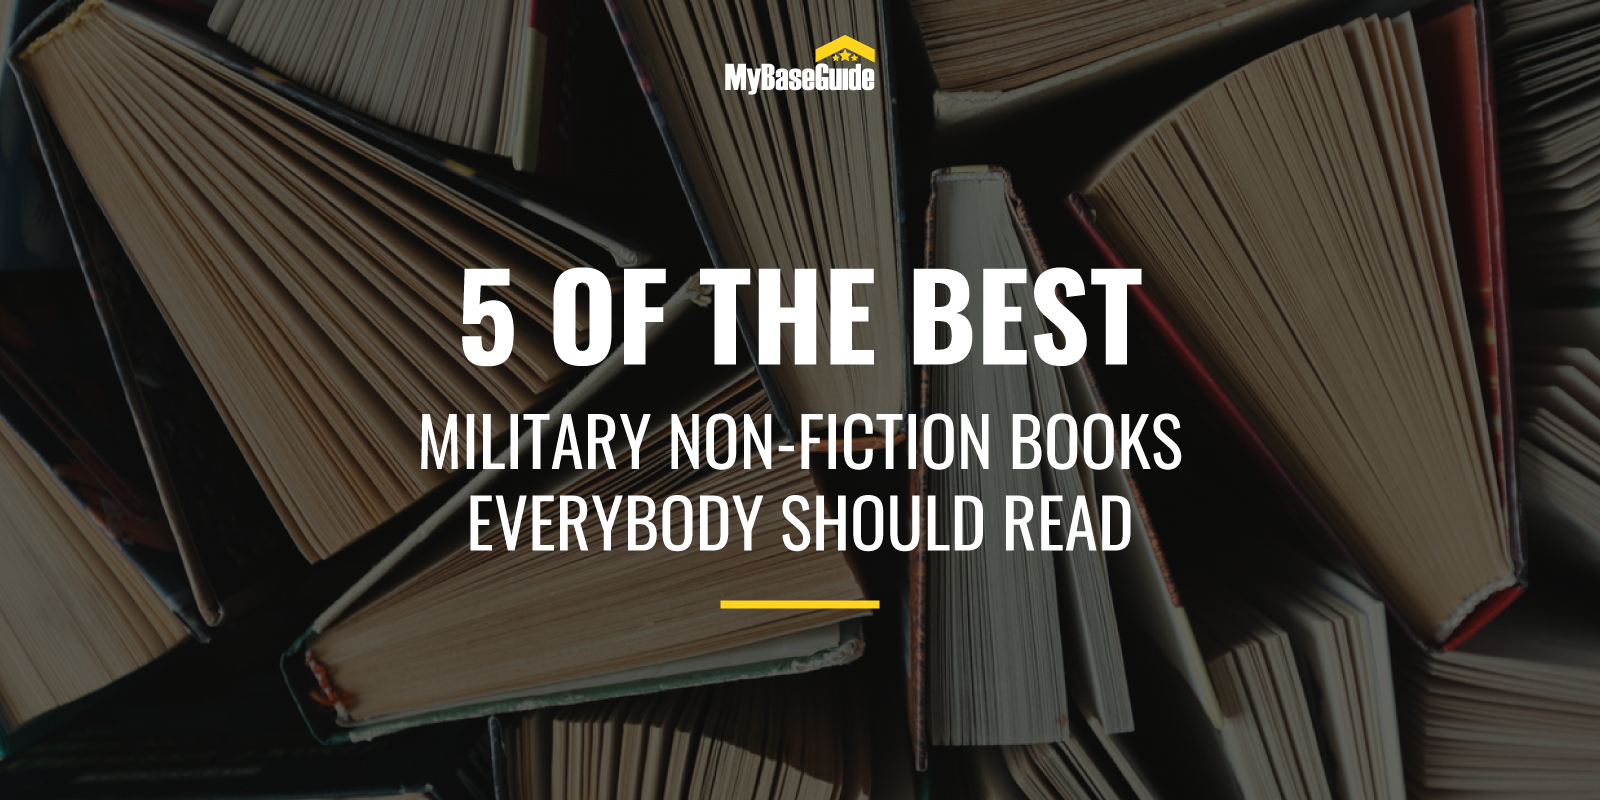 5 of the Best Military Non-Fiction Books Everybody Should Read